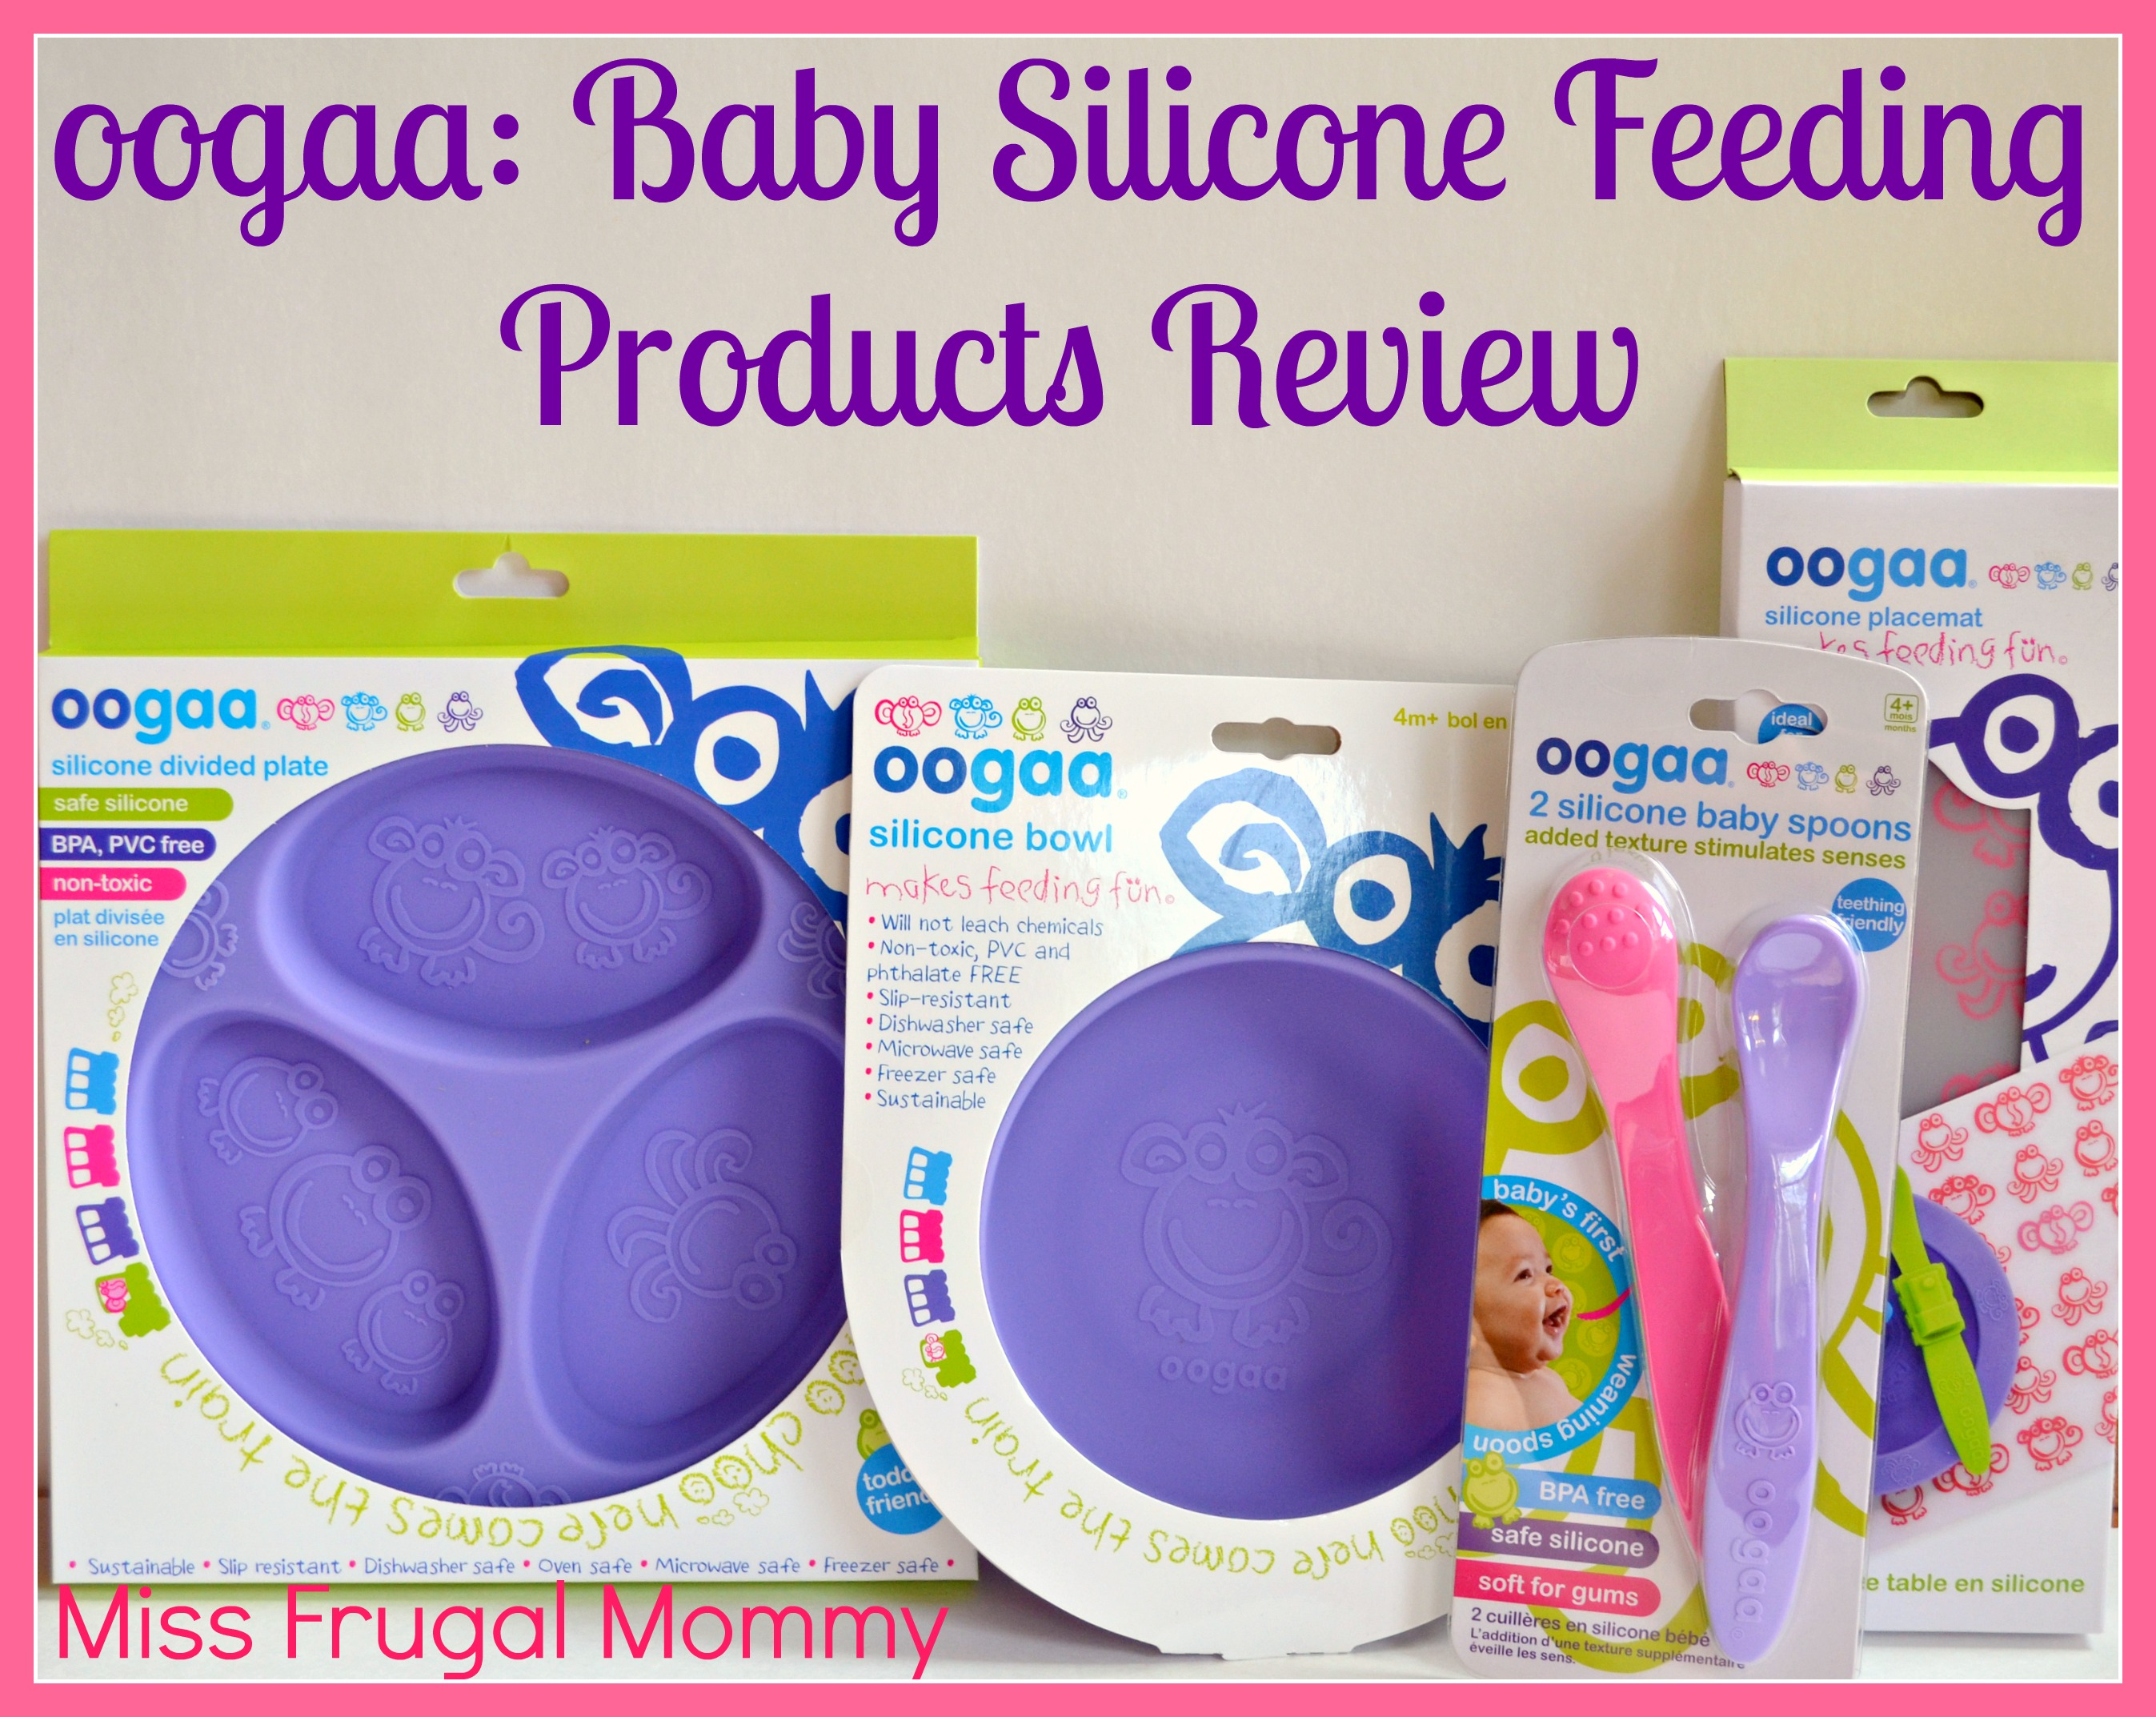 oogaa: Baby Silicone Feeding Products Review (Getting Ready For Baby Gift Guide)